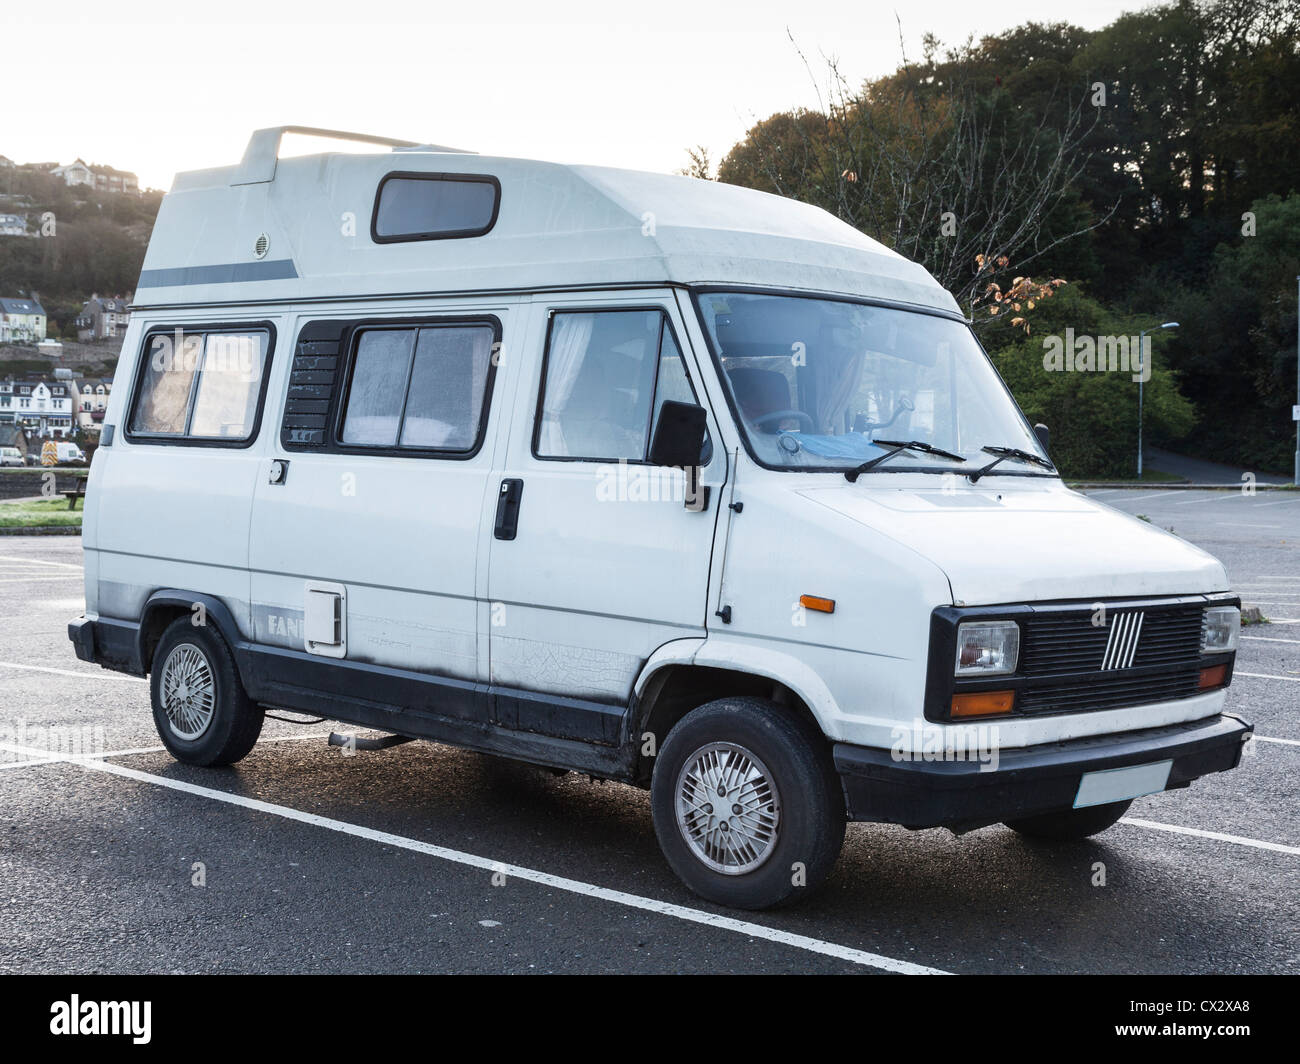 Fiat Ducato Van Holdsworth Fanfare Conversion, parked in a car park. - Stock Image